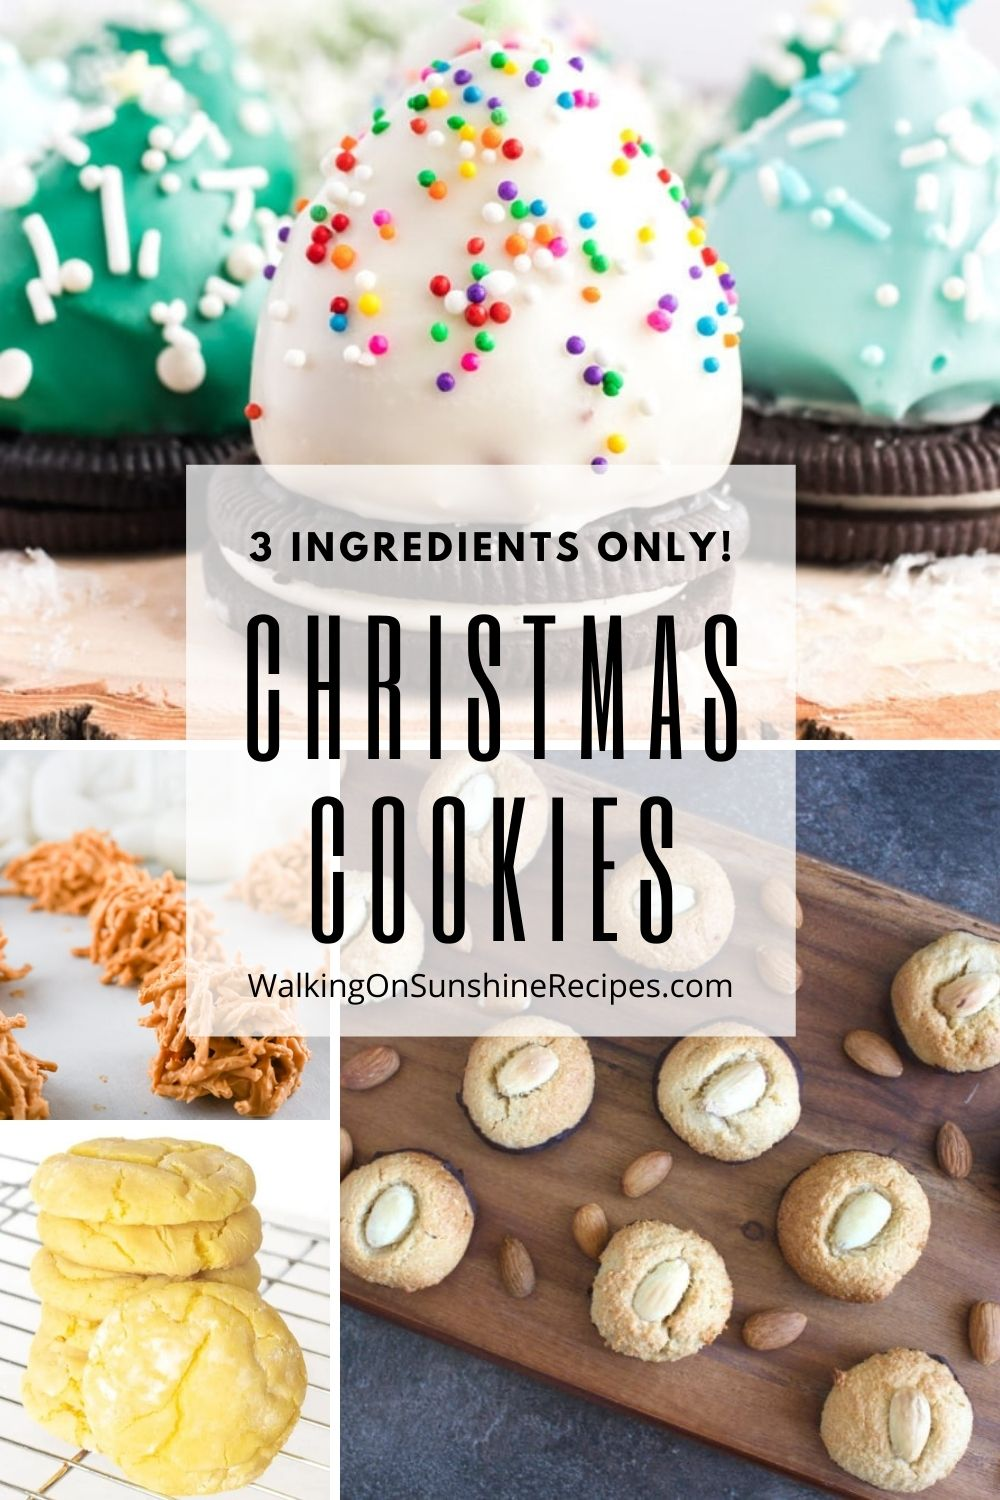 4 different cookies that only have 3 ingredients!